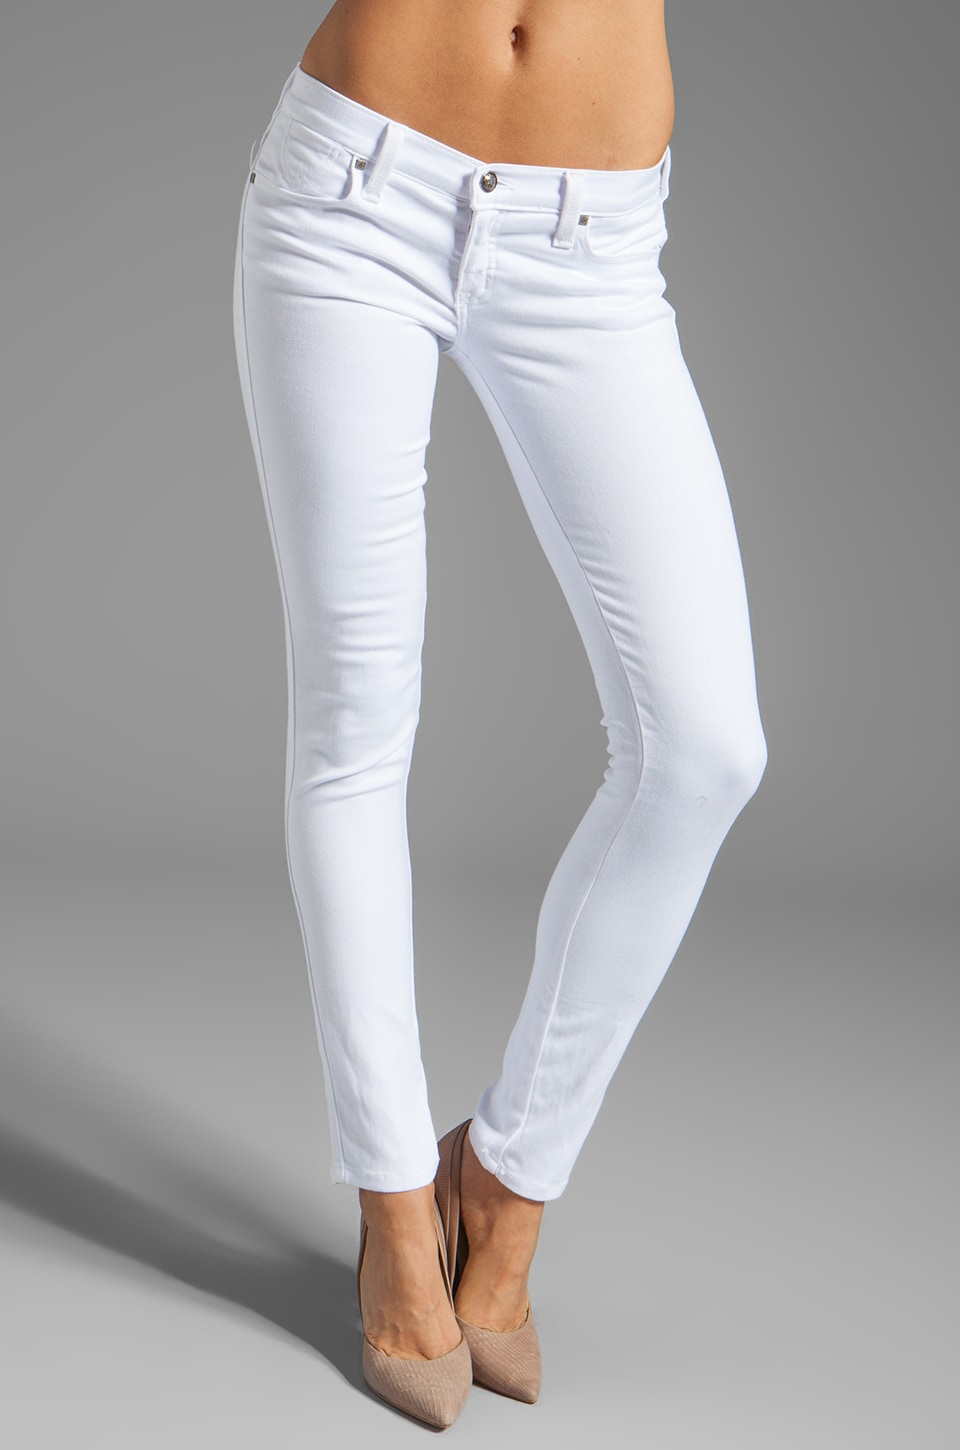 Frankie B. Jeans My BFF Jegging in White